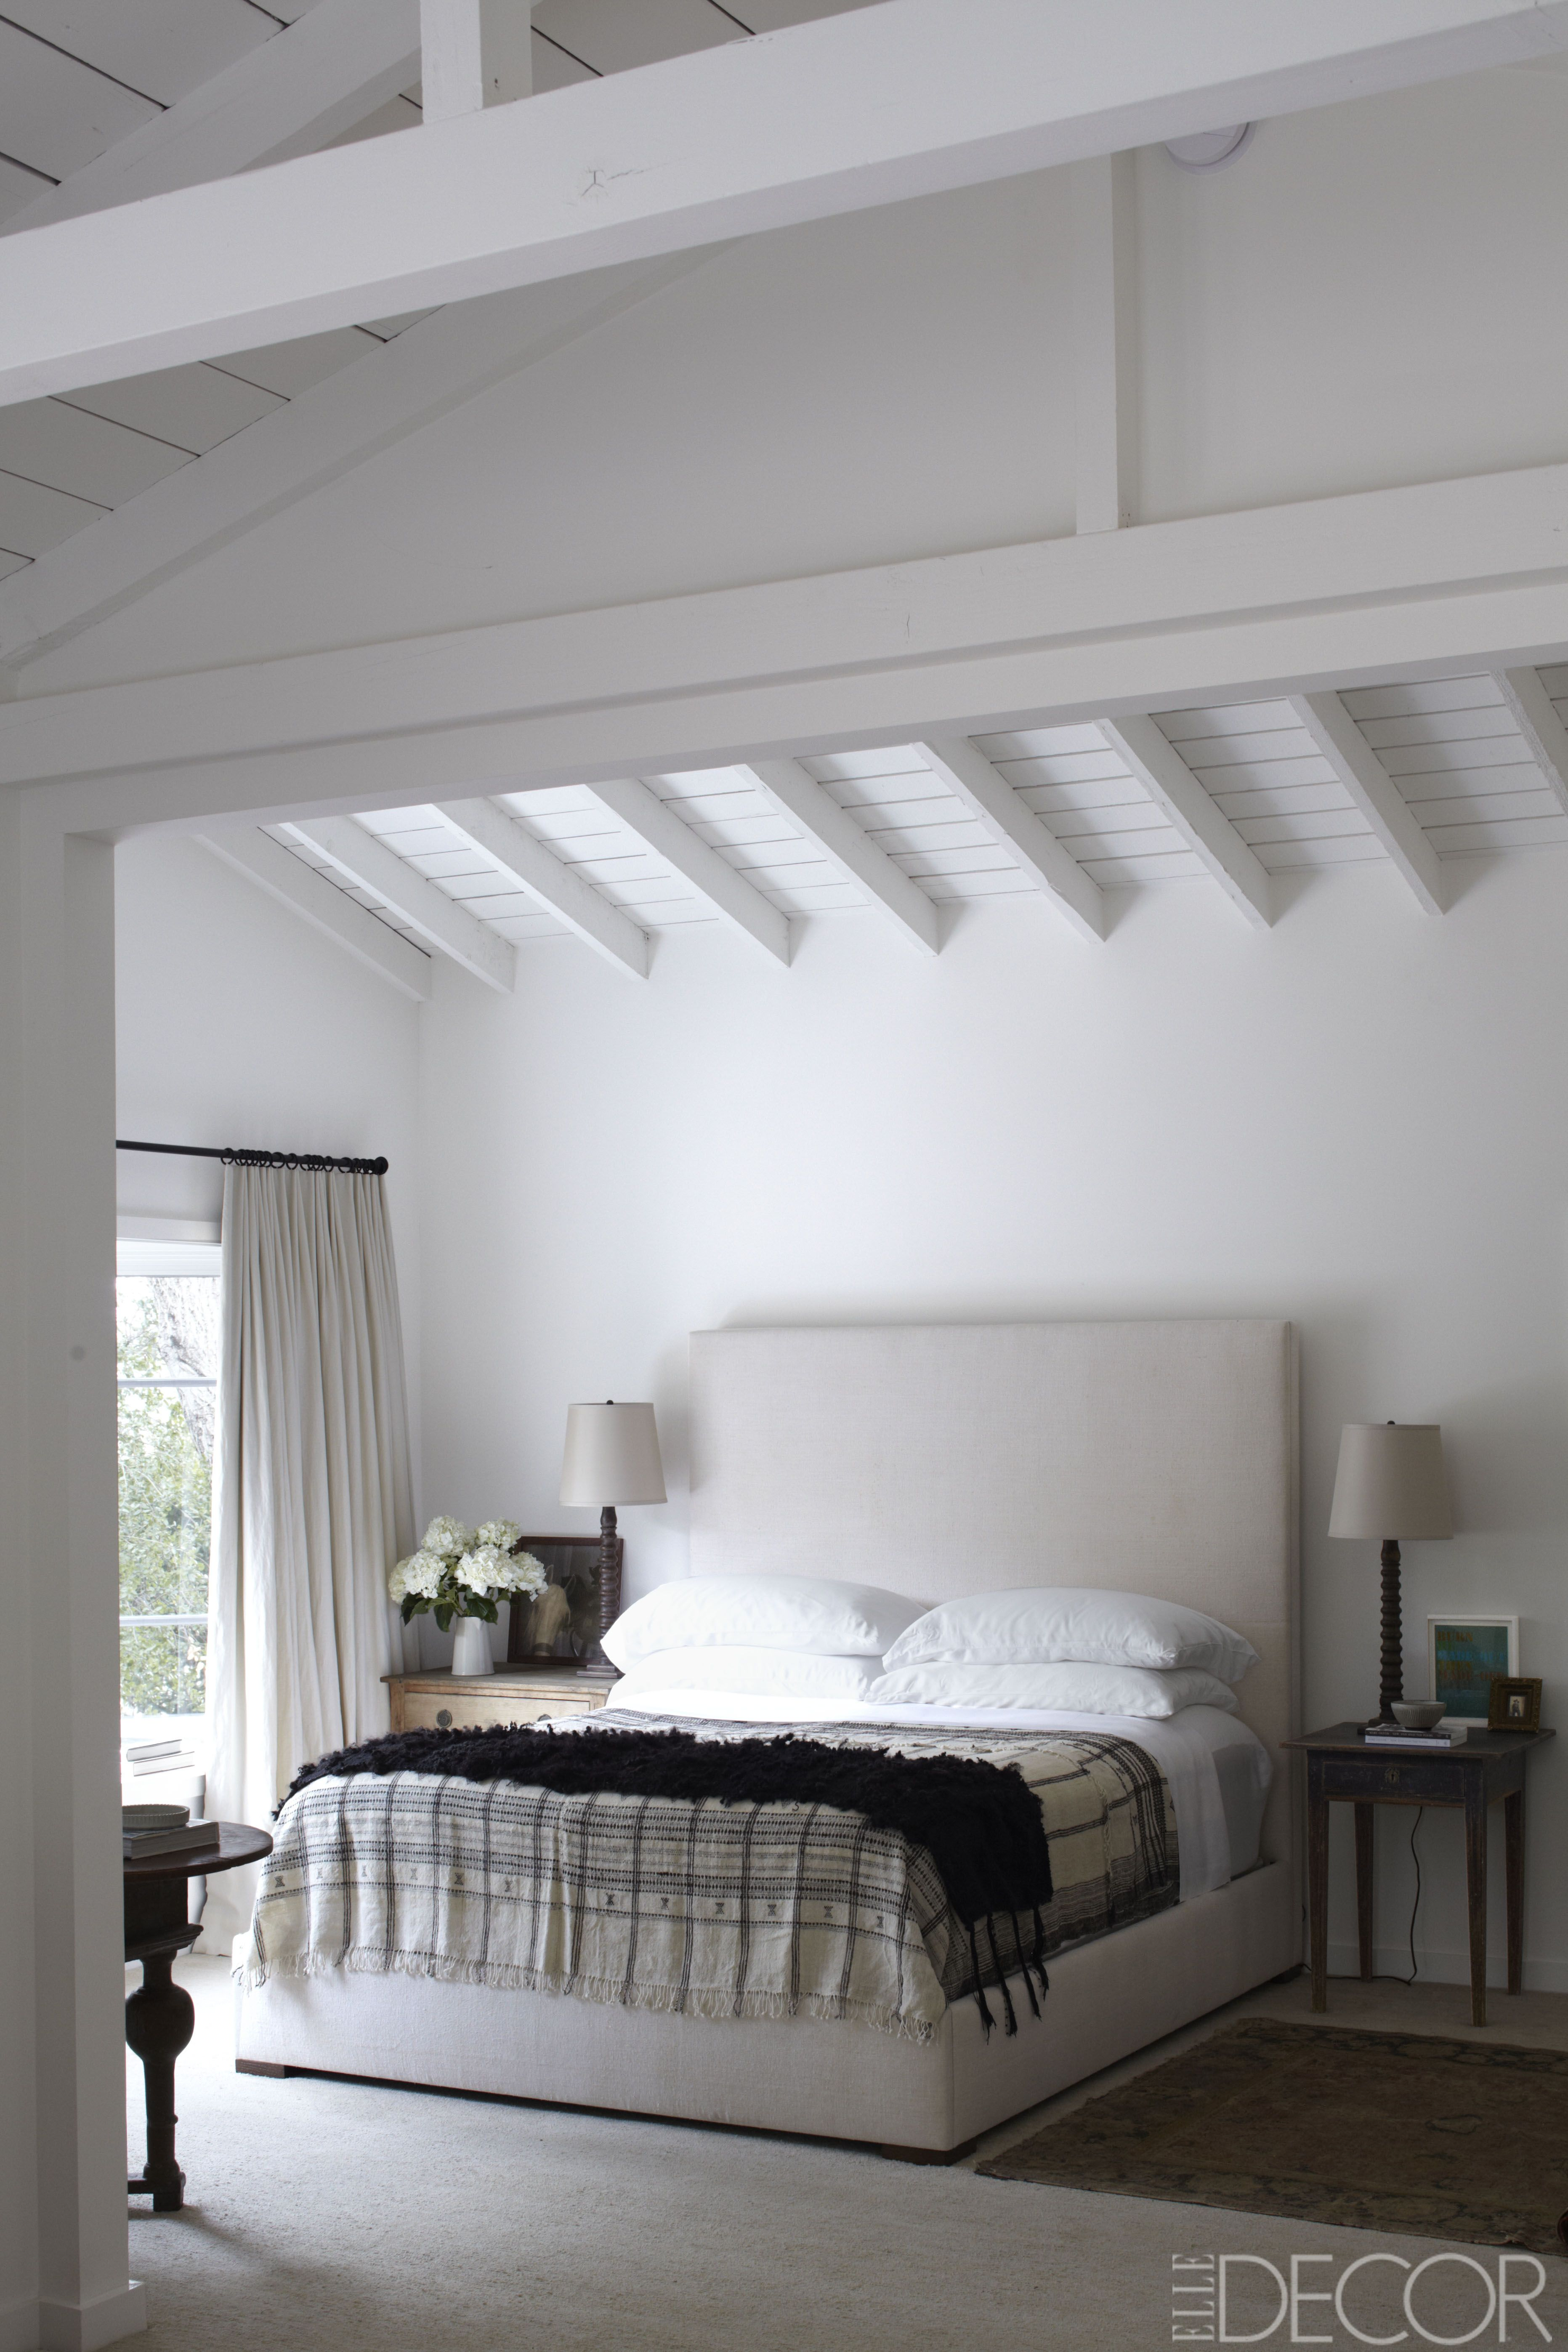 34 of the most enviable celebrity bedroom designs beautiful rh pinterest com